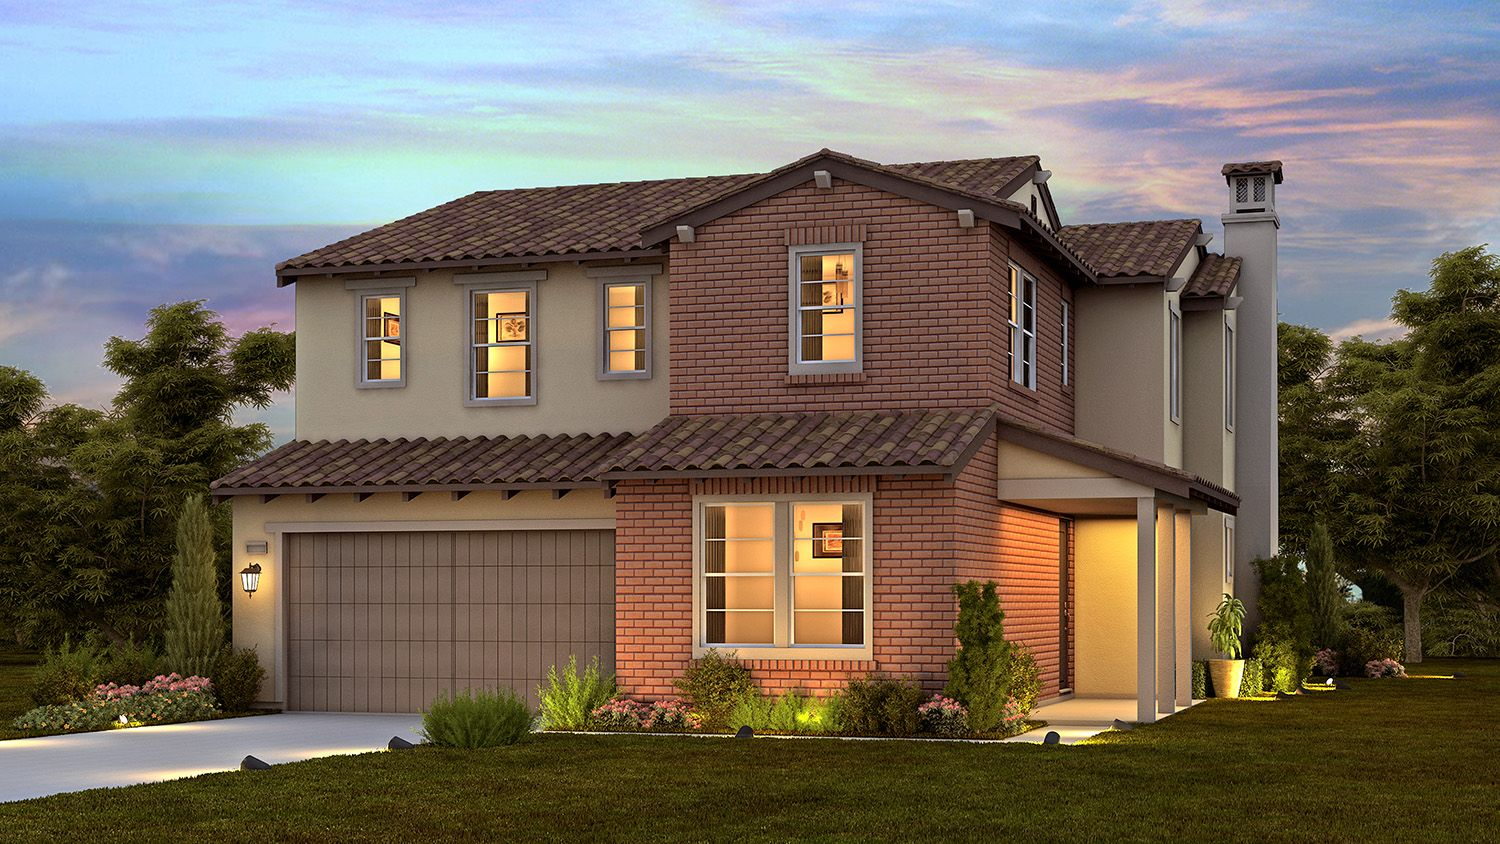 Single Family for Sale at Residence 2 85 Ventada Street Ladera Ranch, California 92694 United States